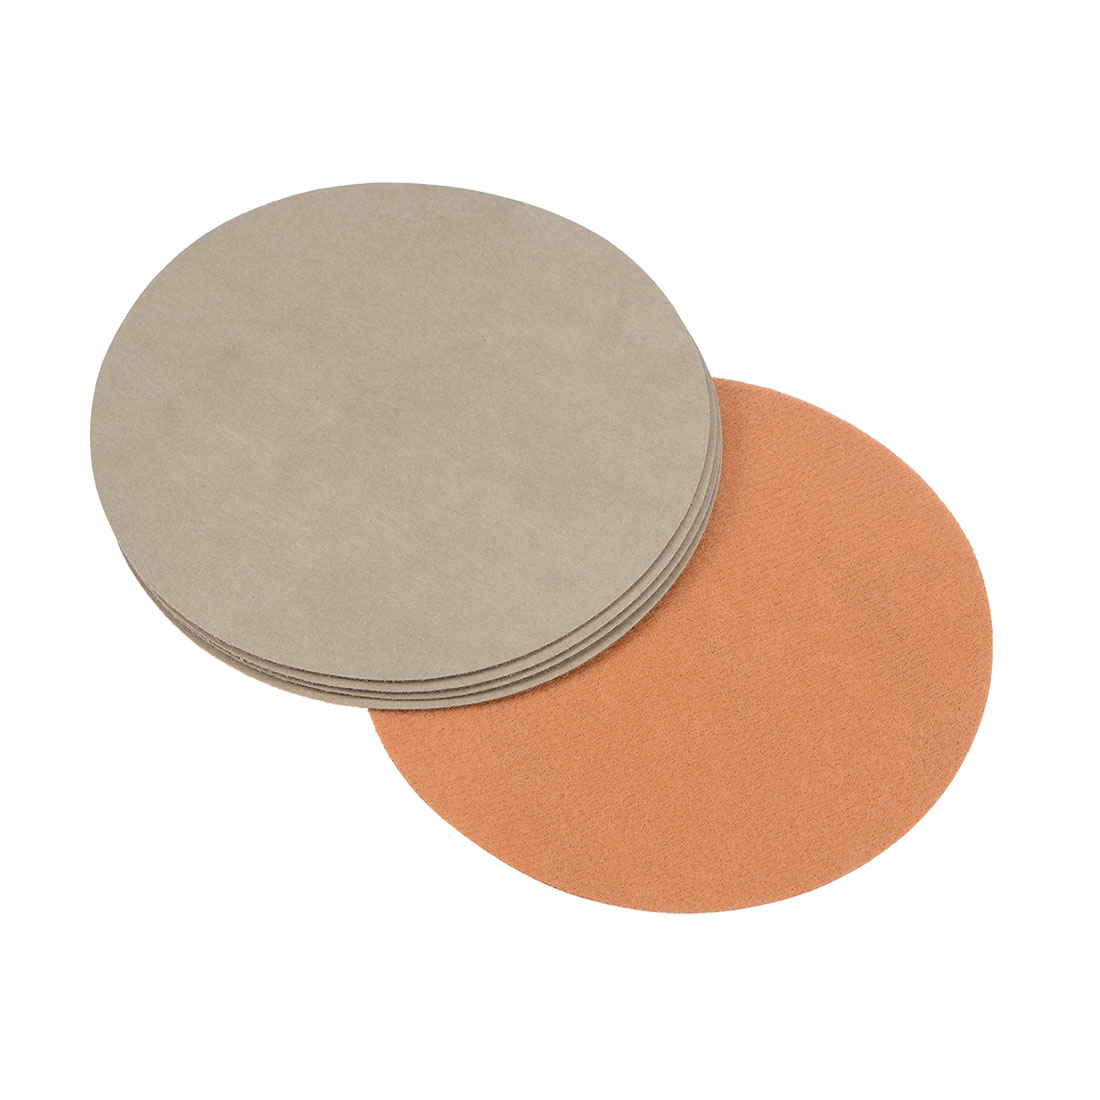 5 inch Wet Dry Discs 10000 Grit Hook and Loop Sanding Disc Silicon Carbide 5pcs